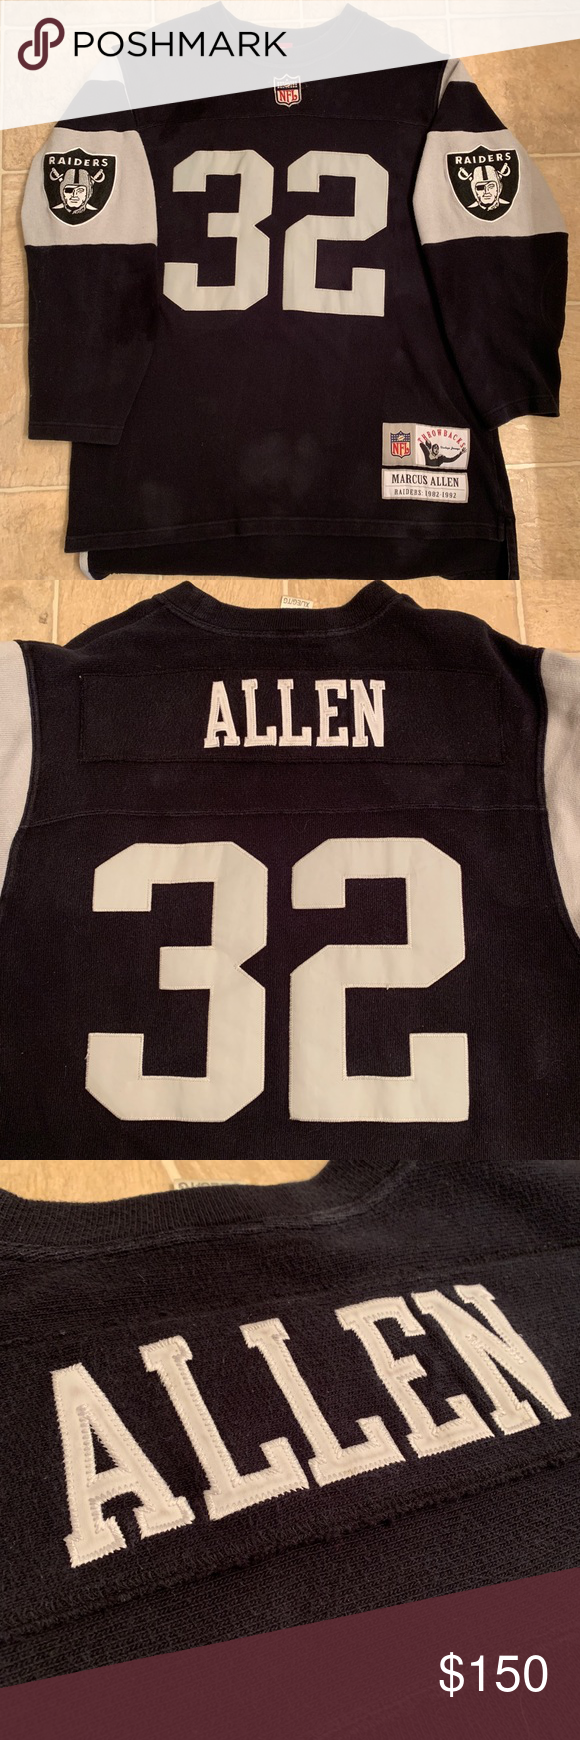 new styles 9e799 54de2 RARE Vintage Marcus Allen Throwback Raider Jersey Listed is ...